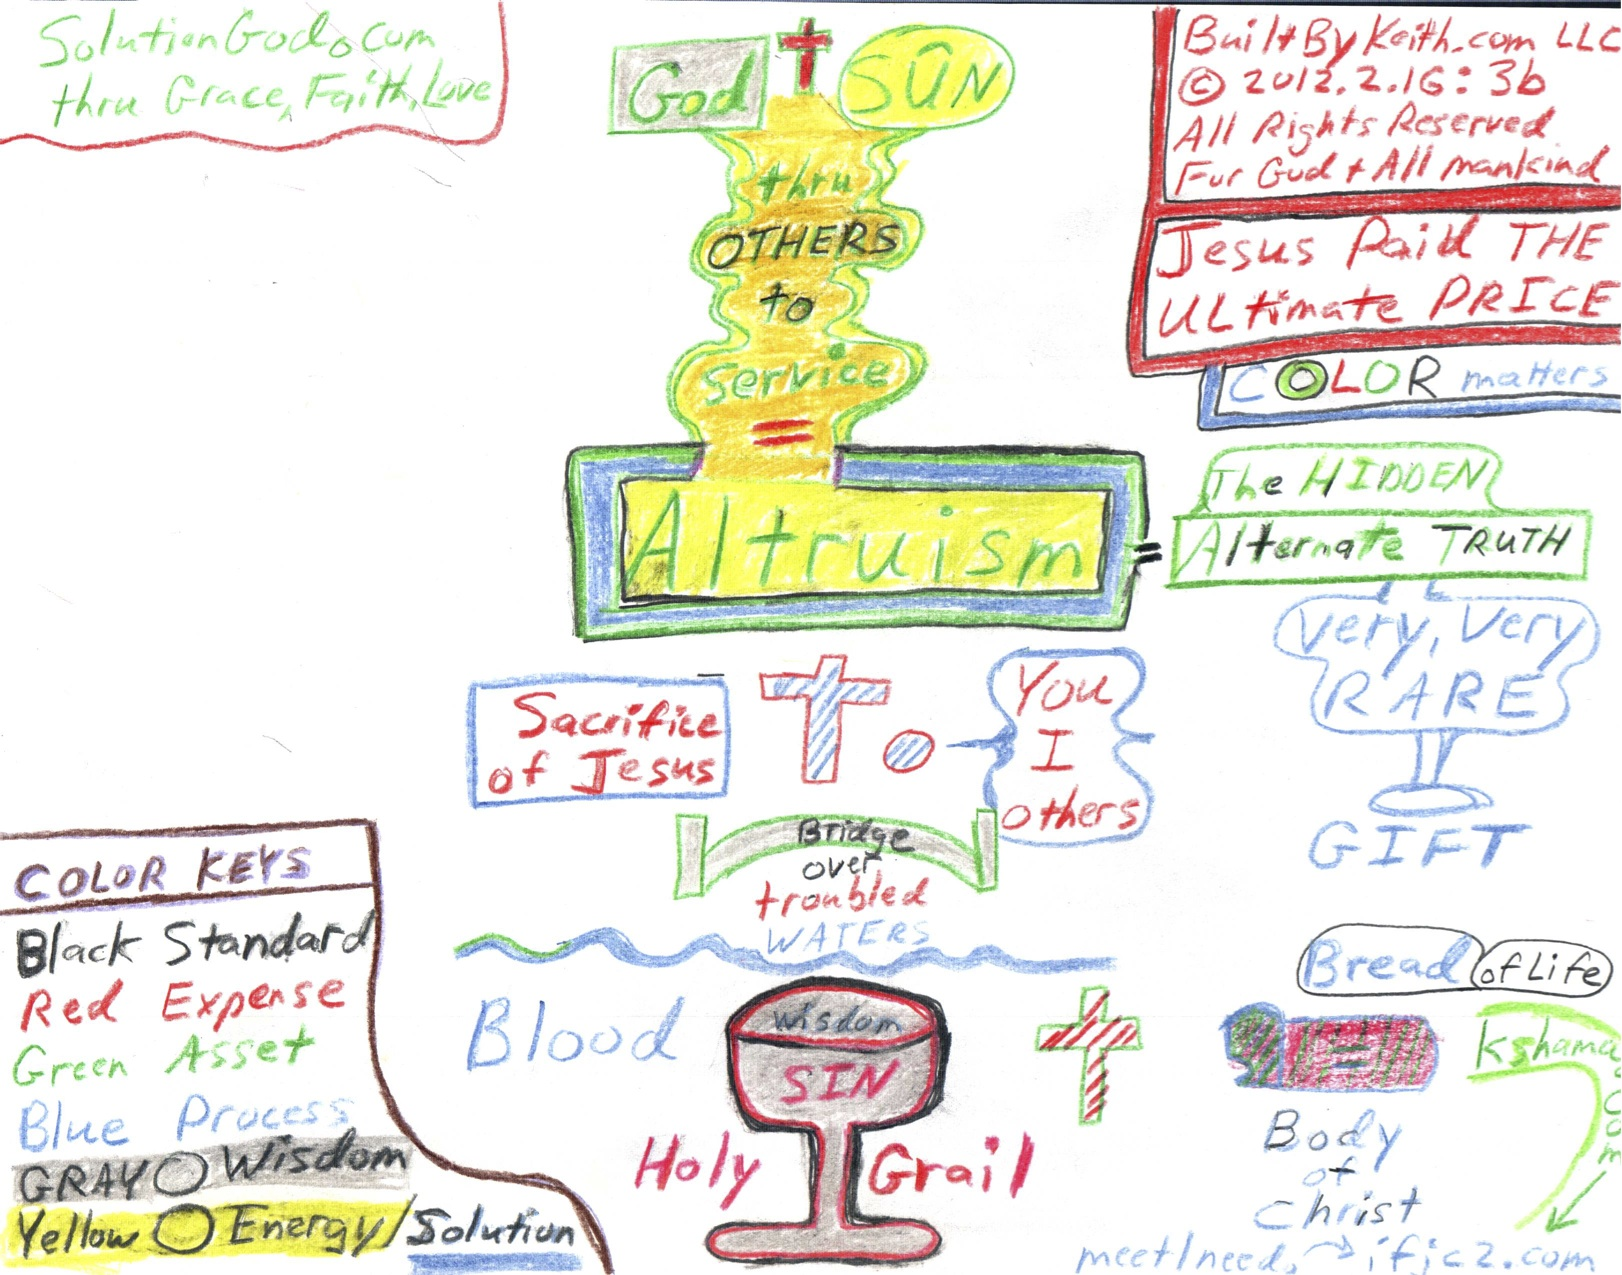 BBK20151123Altruism-SolutionGOD-Diagram2012-12-16